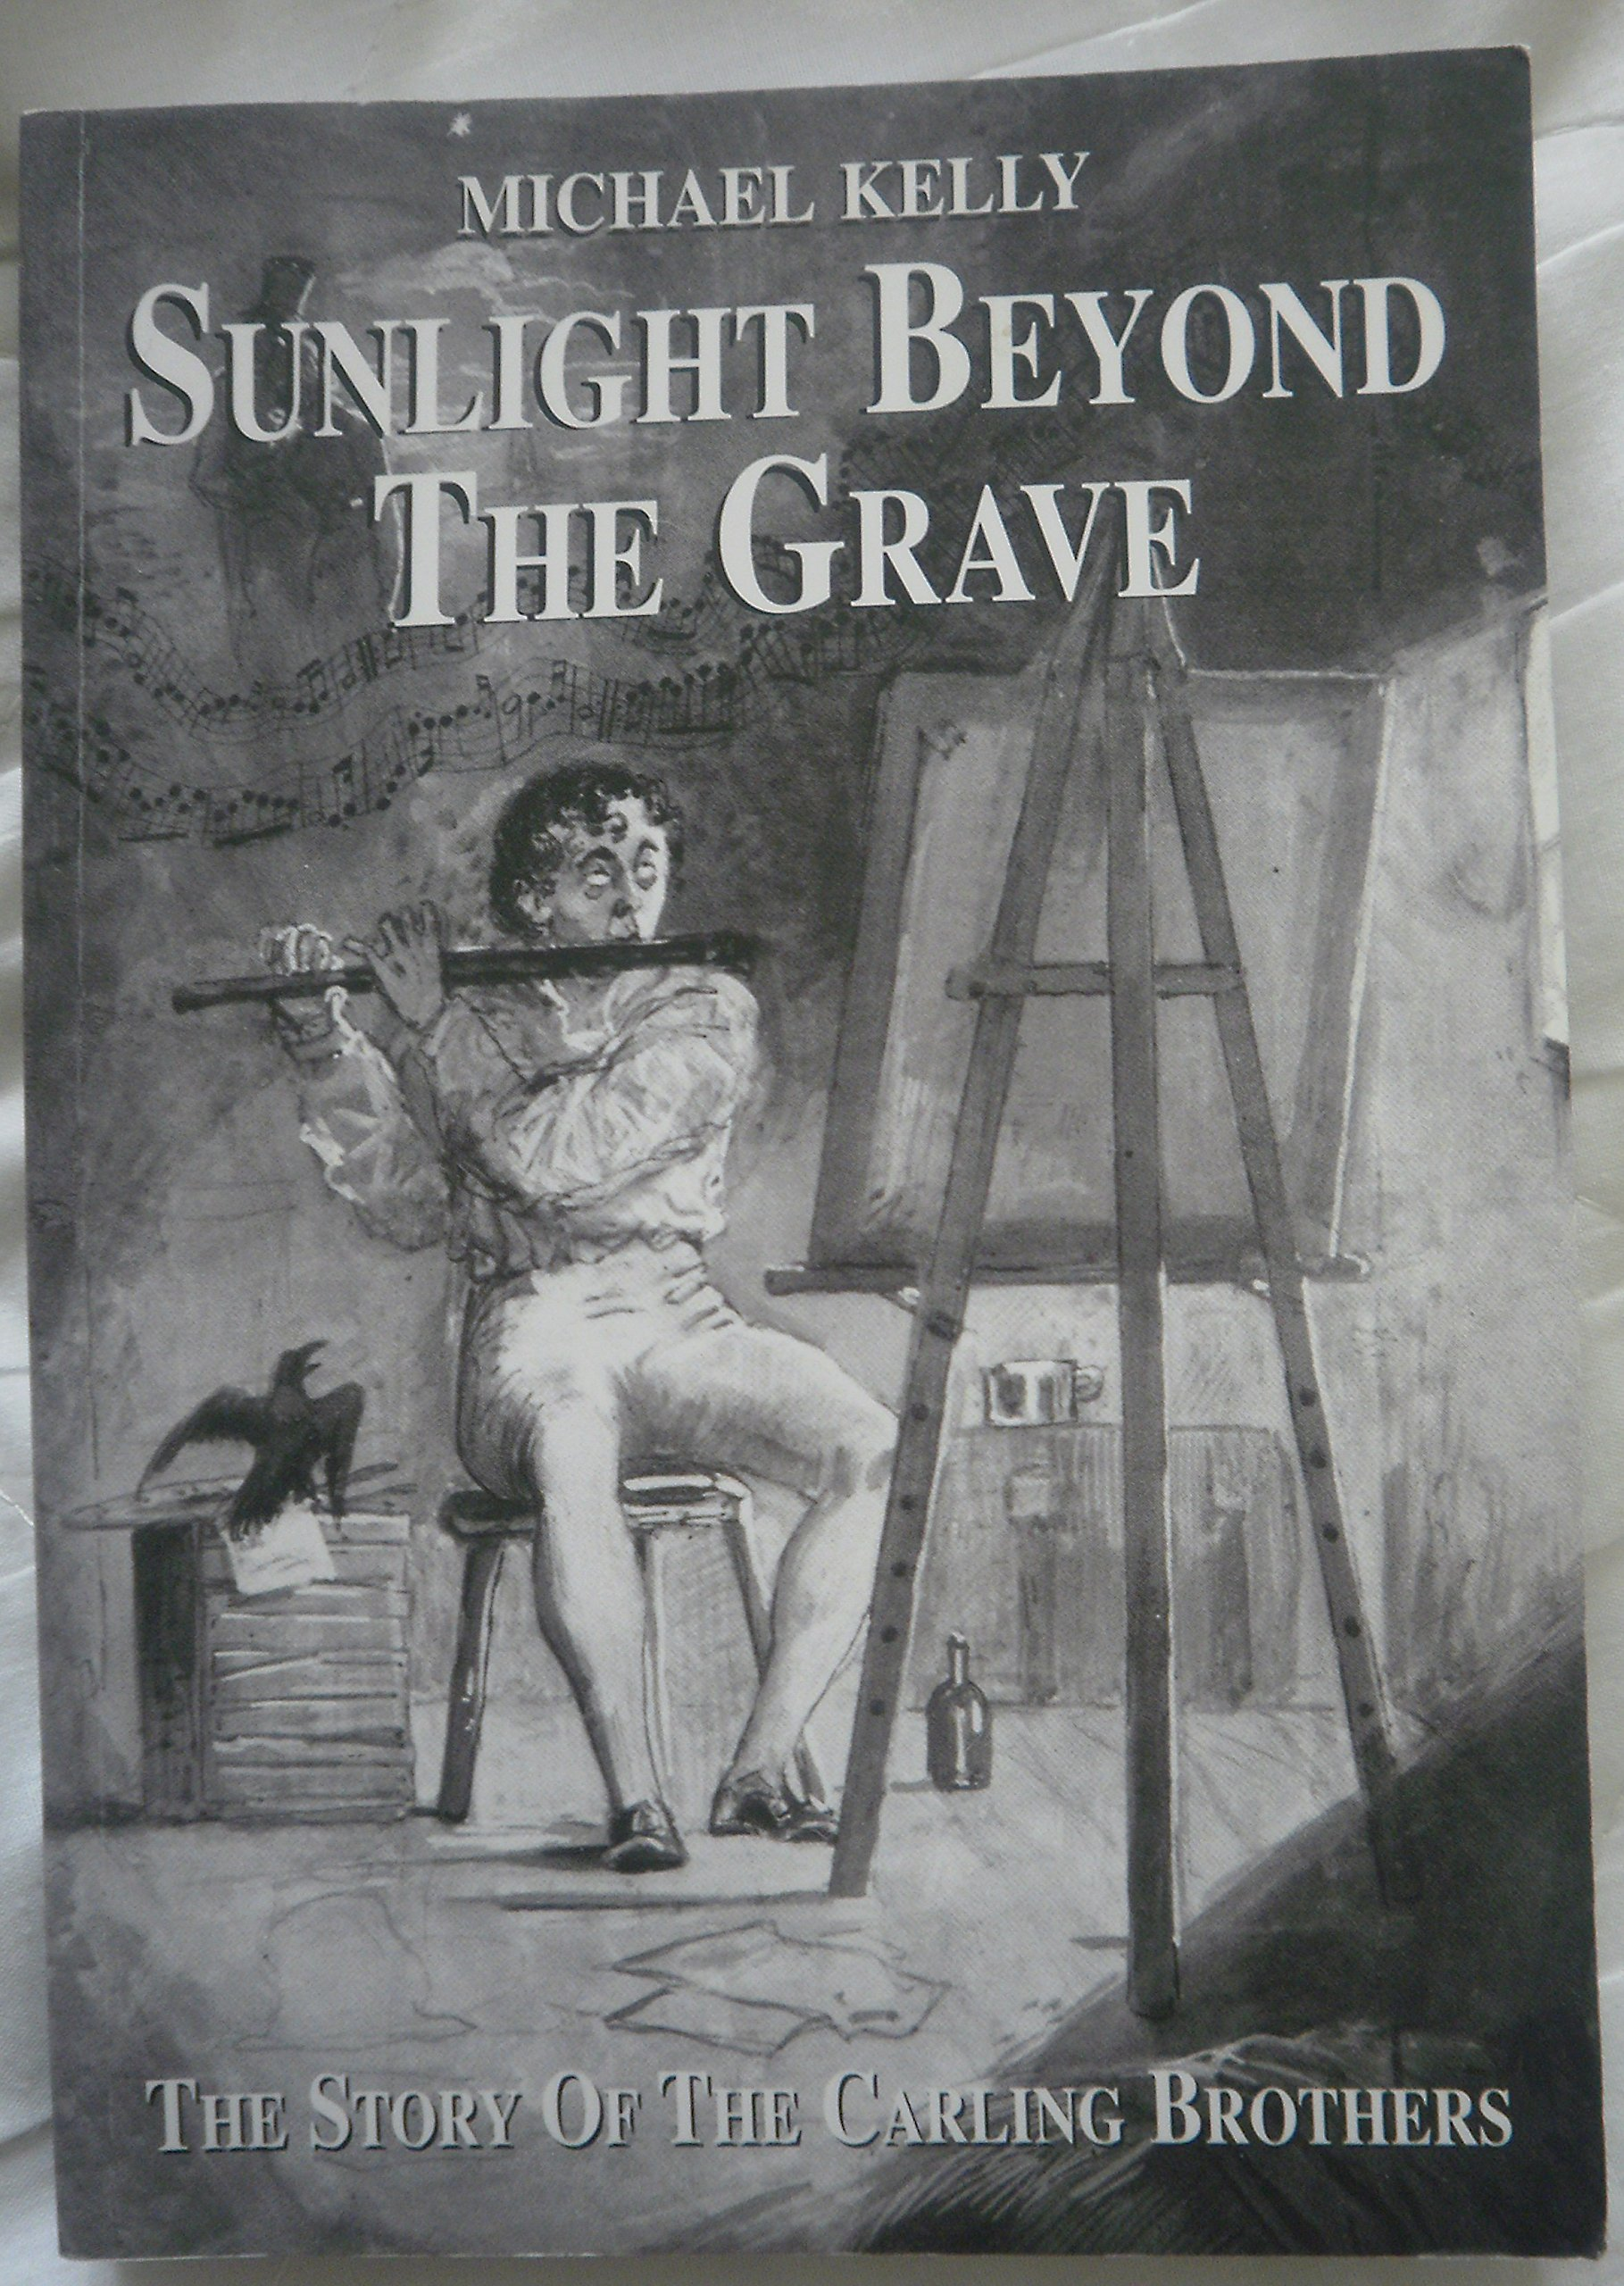 Sunlight Beyond the Grave. The Story of the Carling Brothers By Michael Kelly | eBay